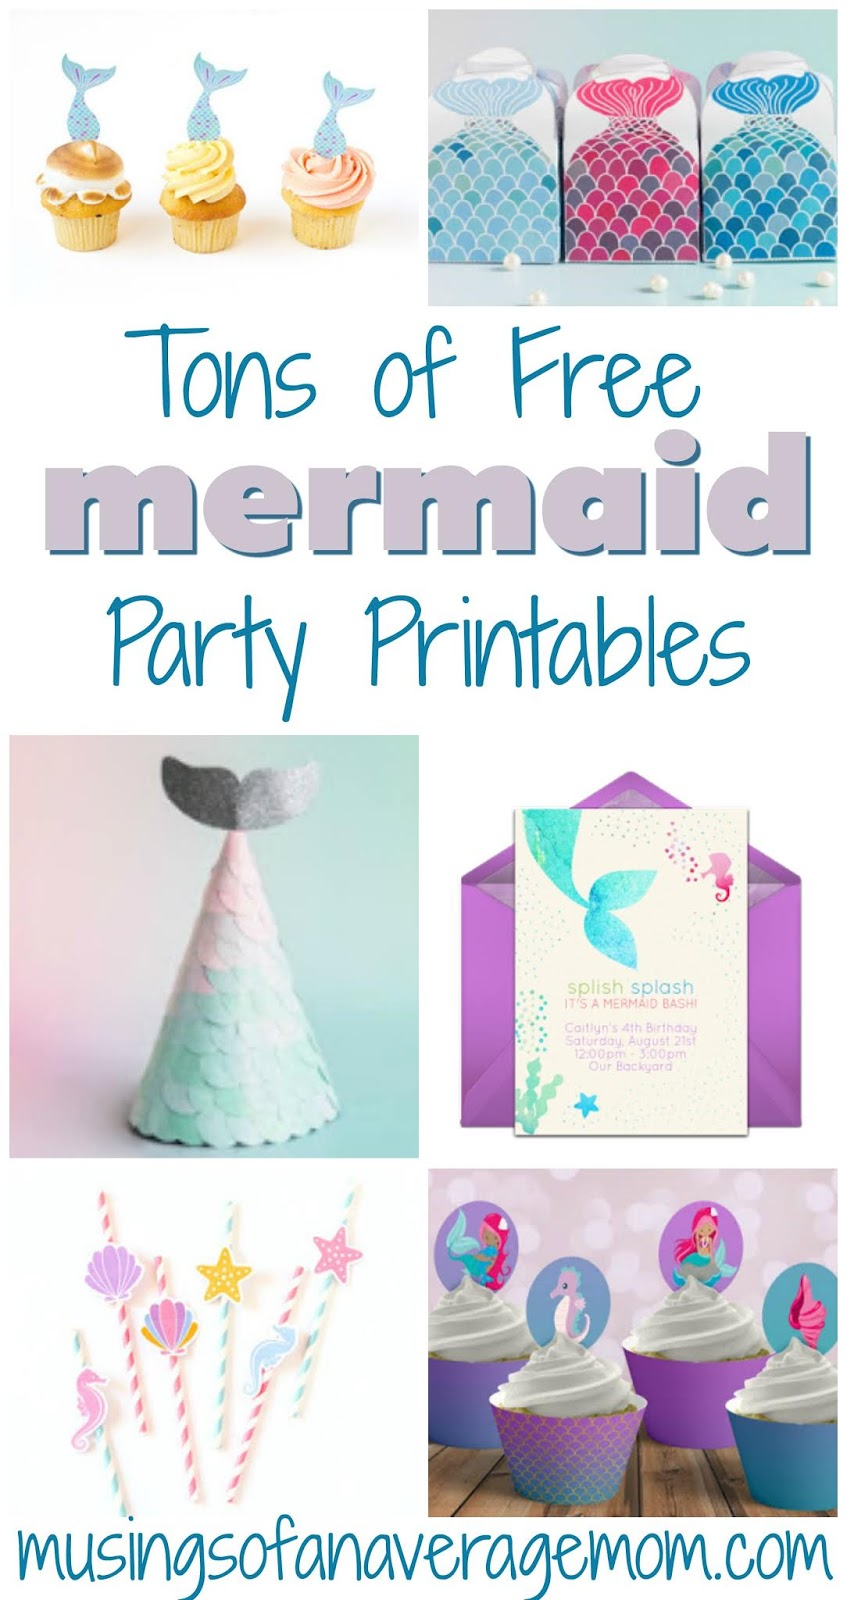 photograph relating to Mermaid Birthday Invitations Free Printable named Musings of an Common Mother: Mermaid Bash Printables